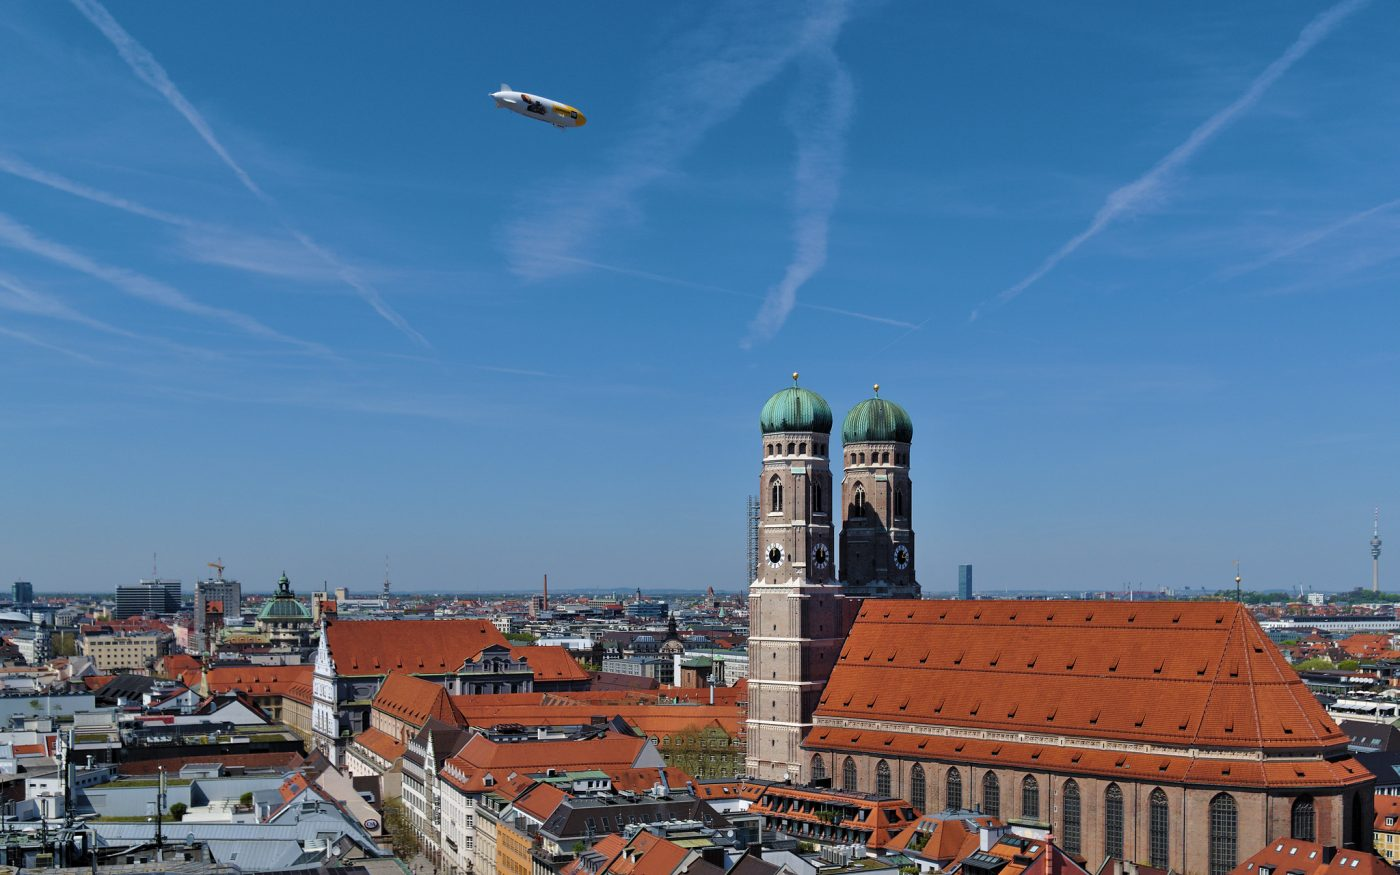 https://www.flickr.com/photos/protake/27876250518/, where to stay in munich